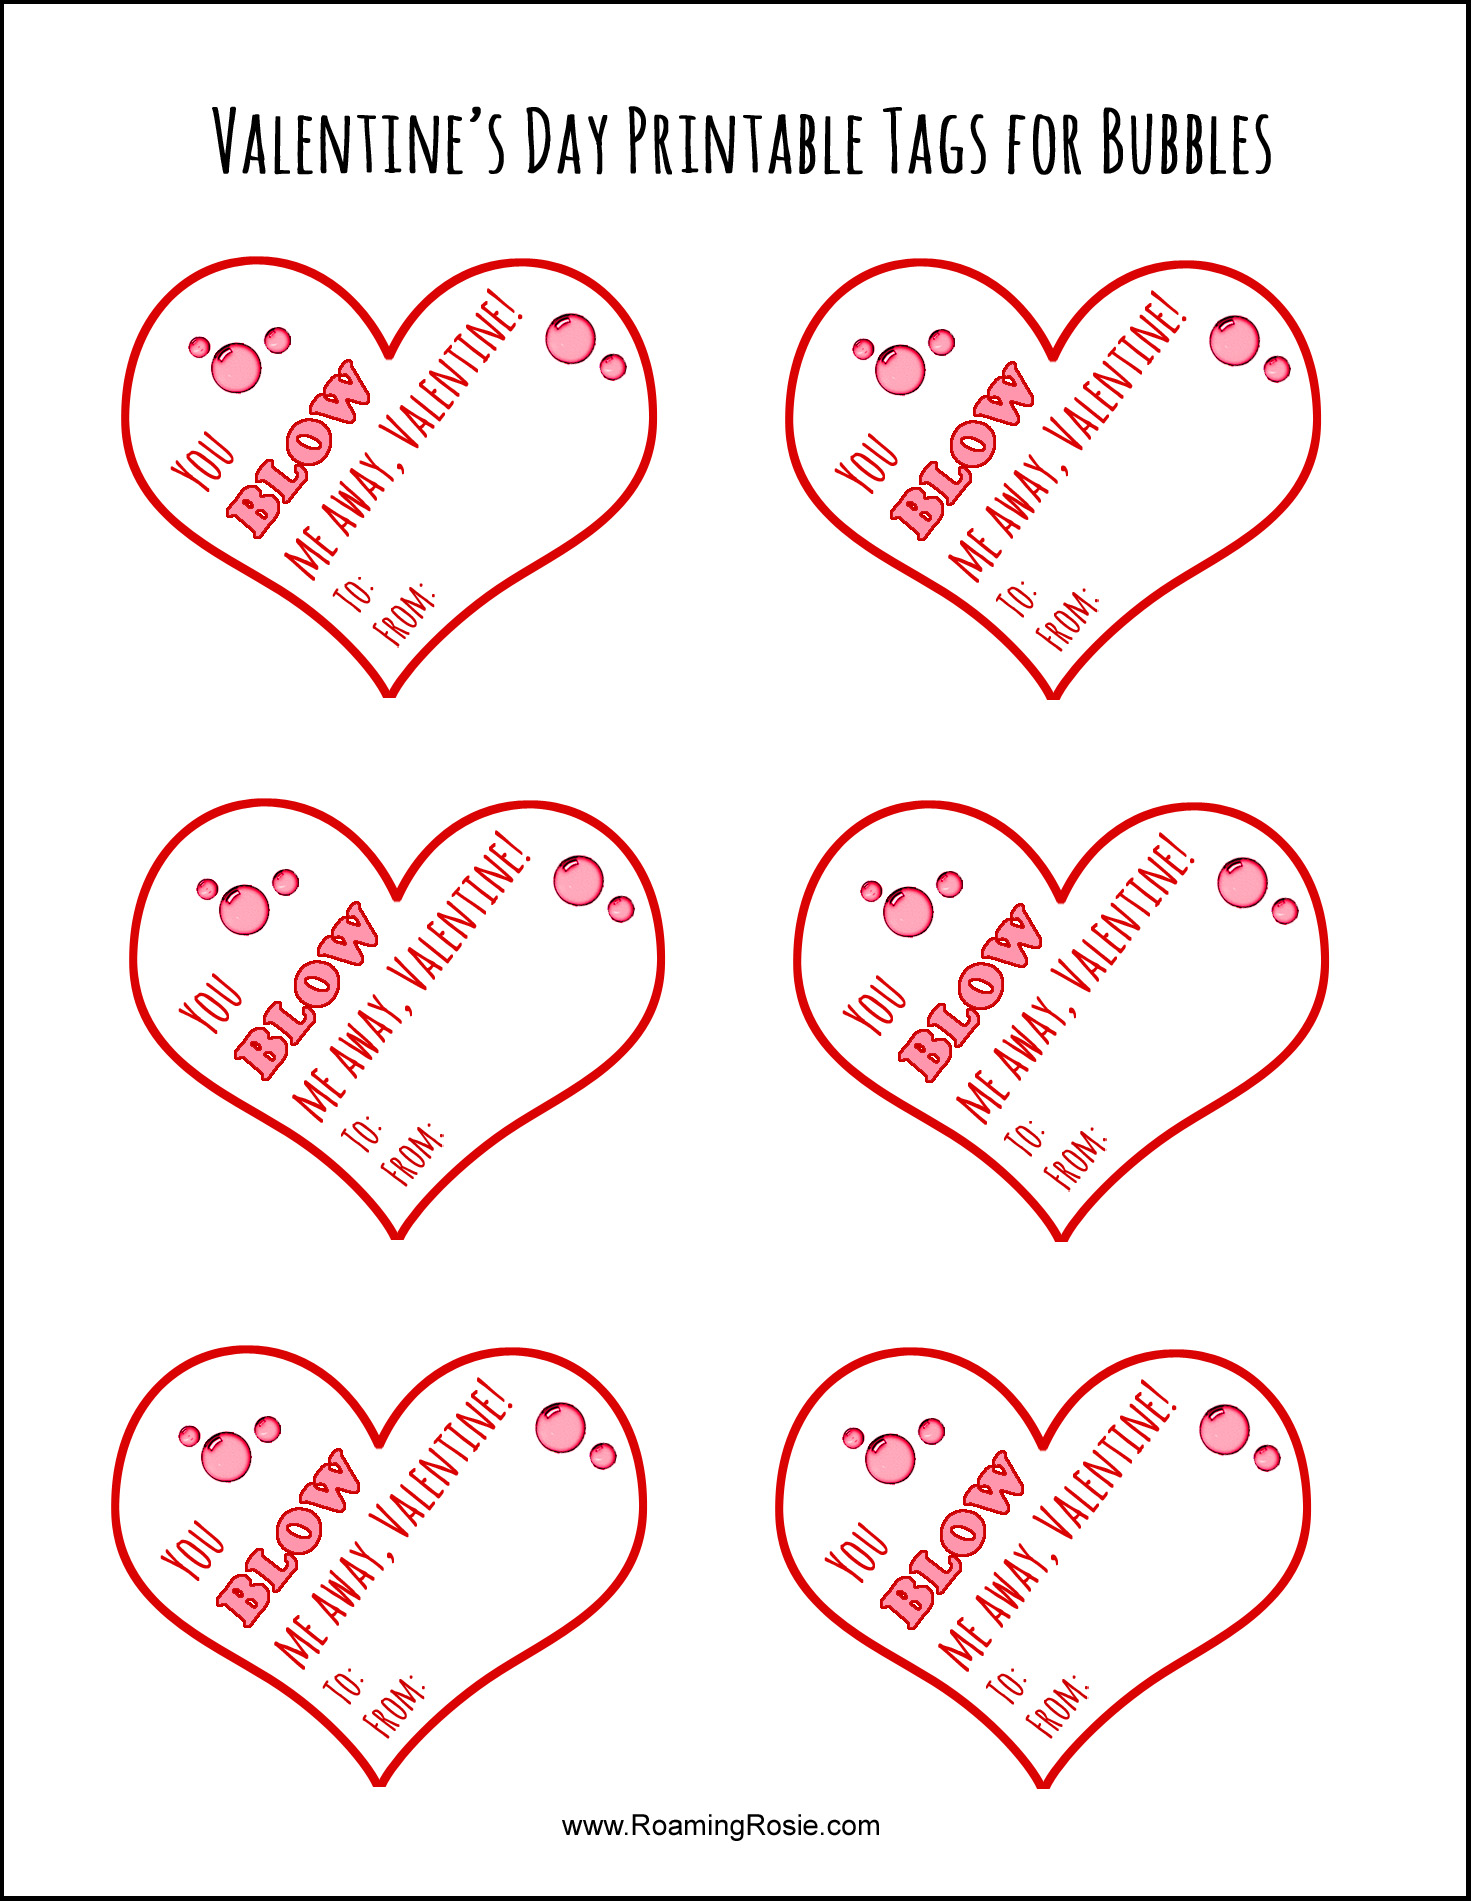 picture about Bubble Valentine Printable known as Valentines Working day Printable Tags for Bubbles Roaming Rosie